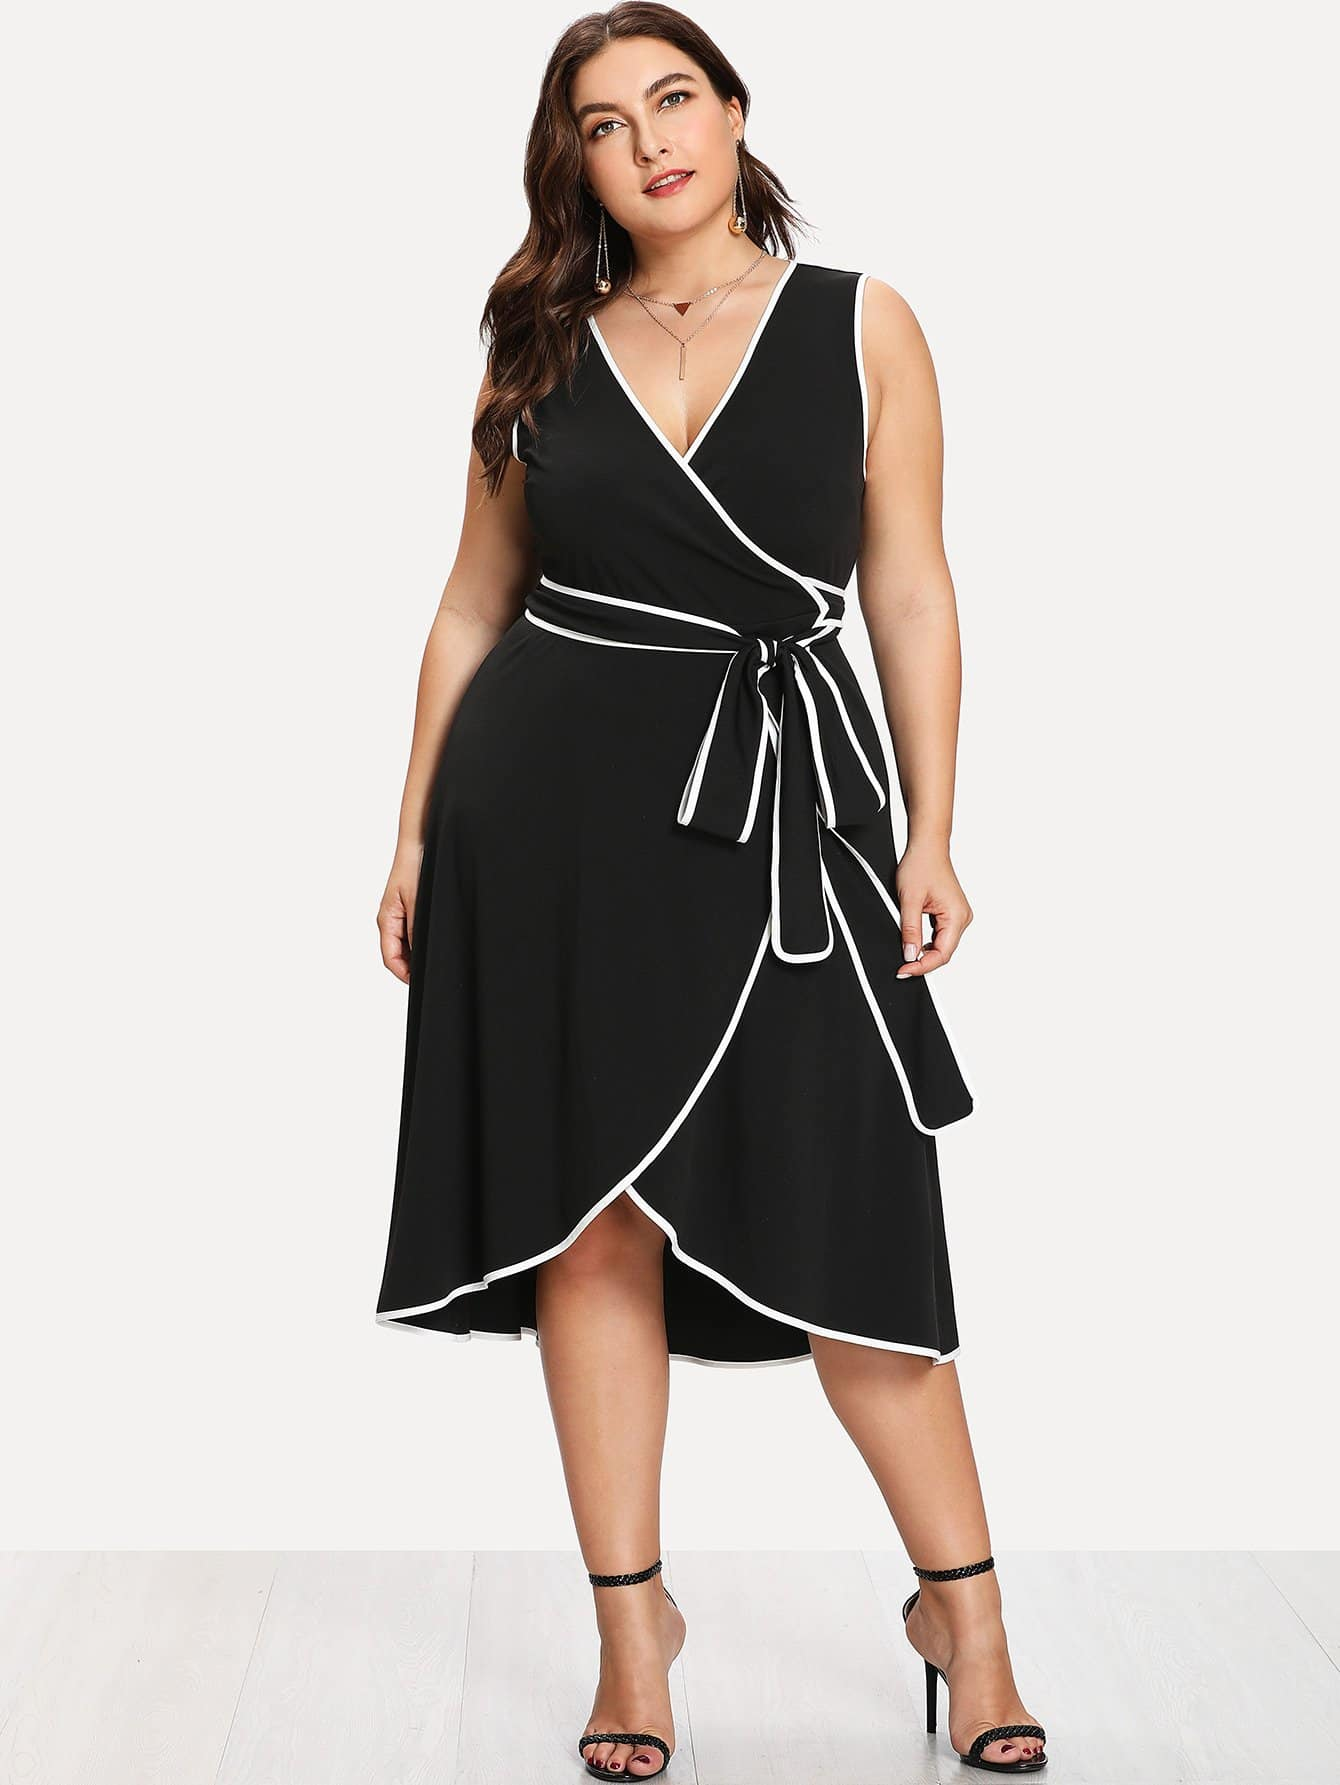 Contrast Binding Sleeveless Wrap Dress contrast binding wrap dress